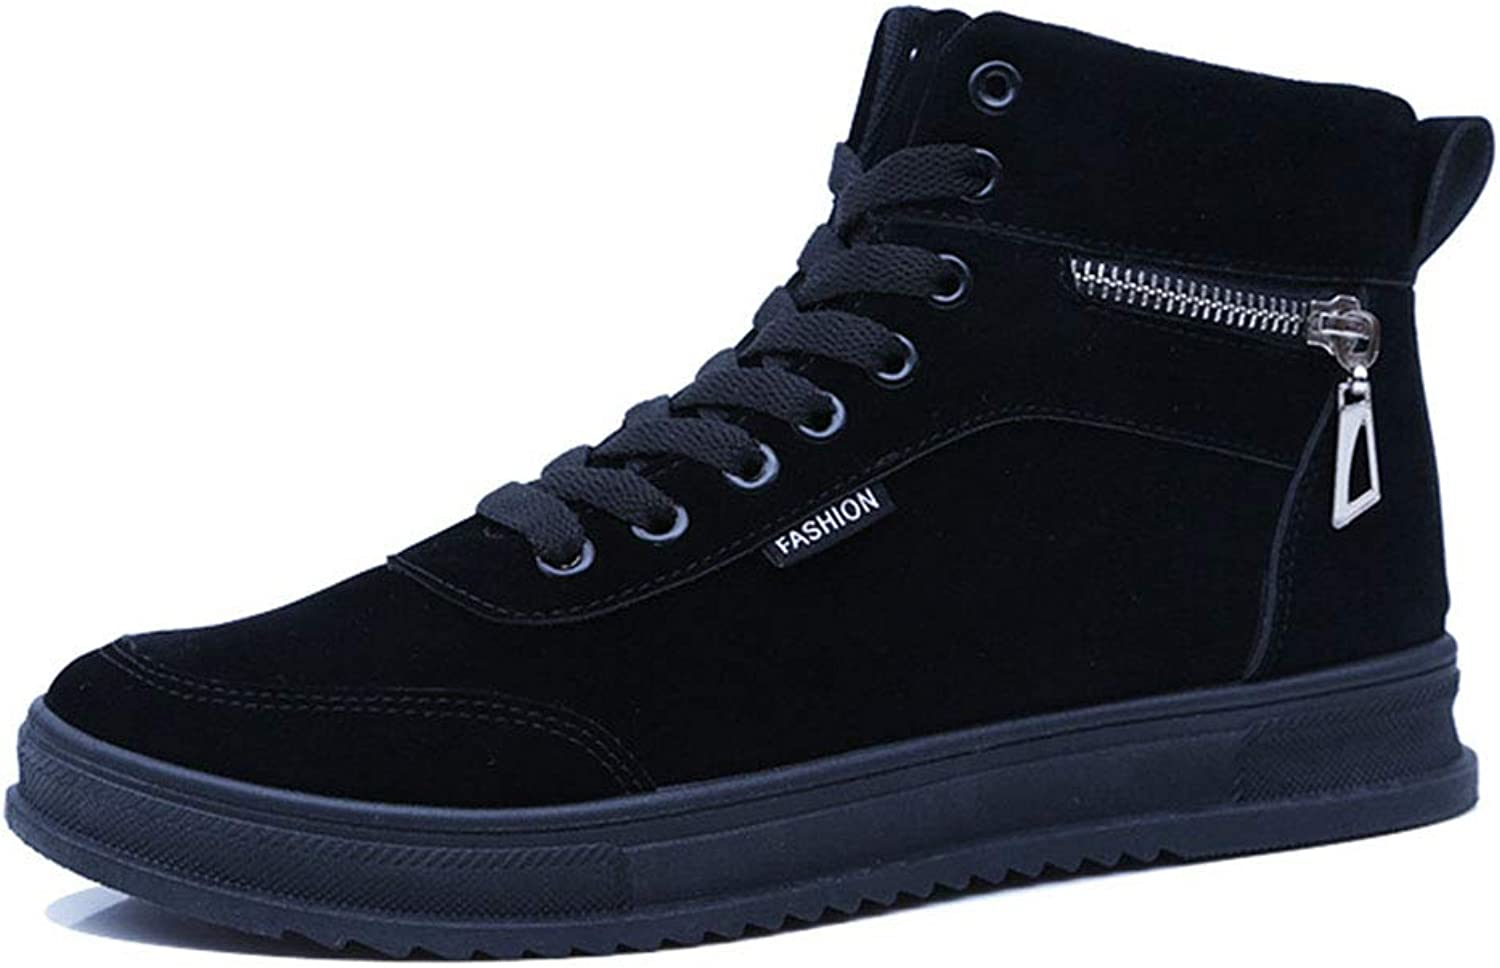 Men's Boots Suede Fall & Winter High-Top Casual shoes Fashion Sports shoes Lace Up Academy Deck shoes Outdoor Hiking shoes,B,41